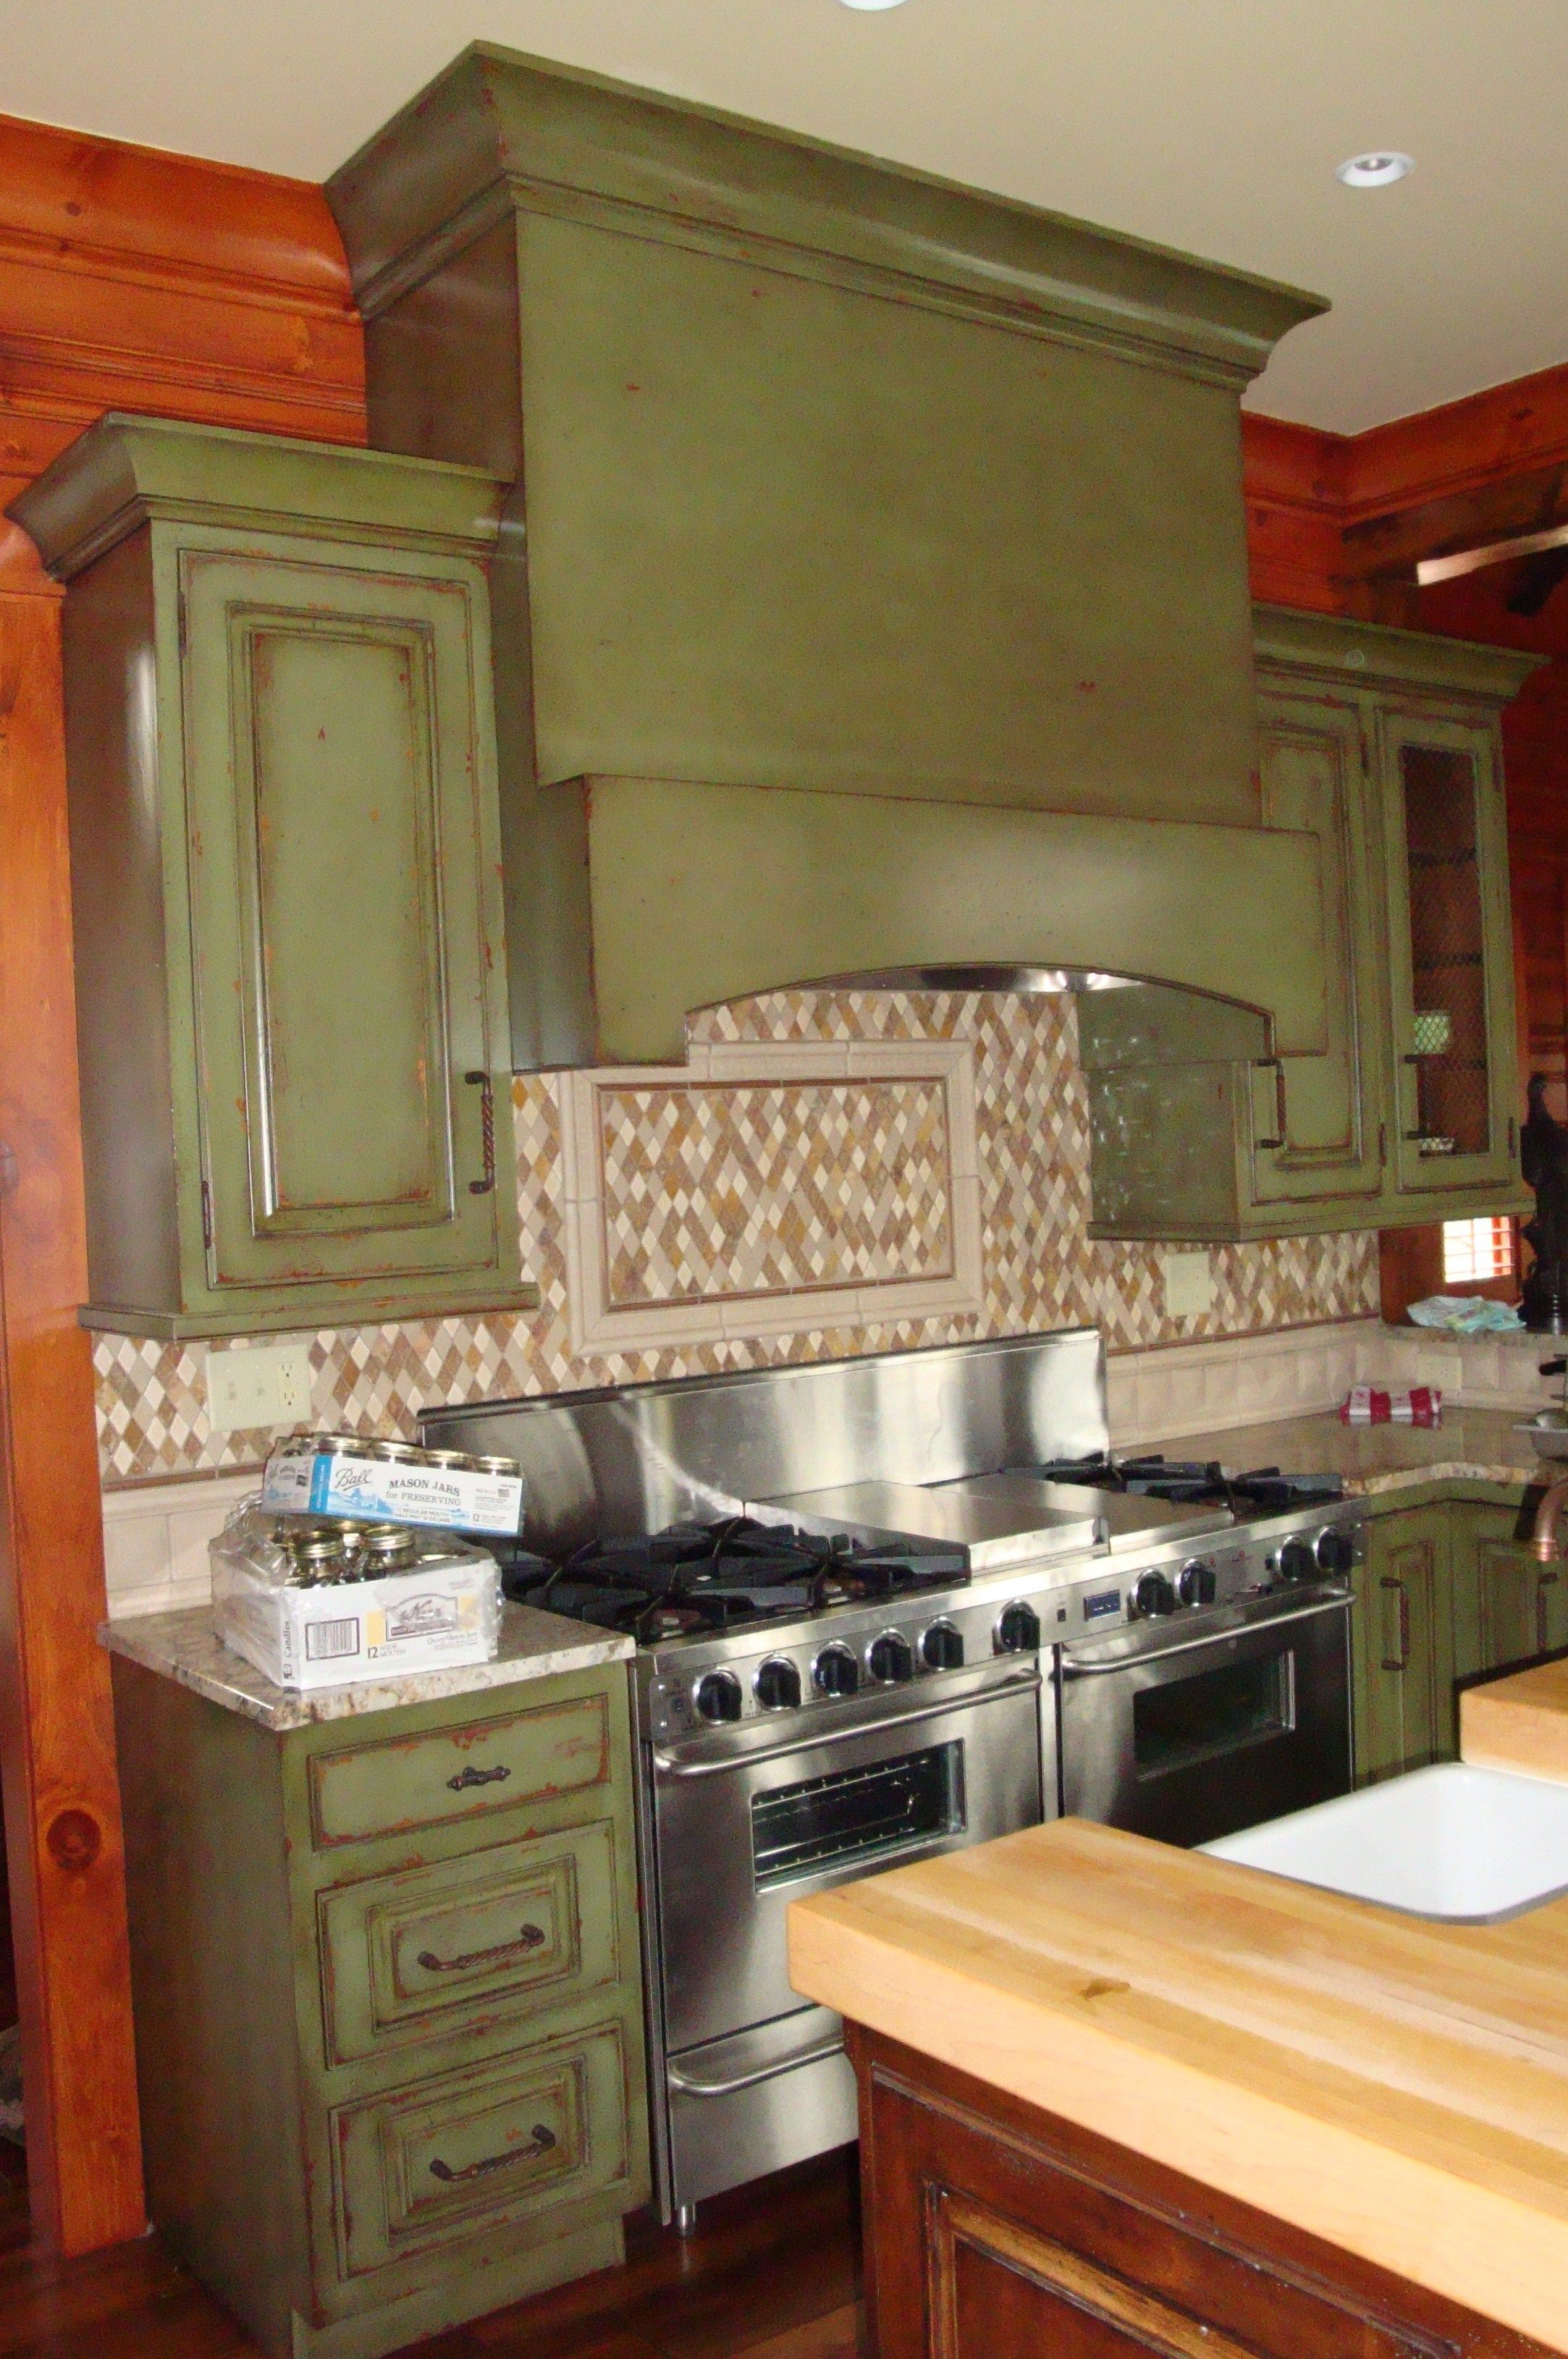 Cabinet Finishes Kitchen Cabinets Decor Distressed Kitchen Cabinets Kitchen Cabinets